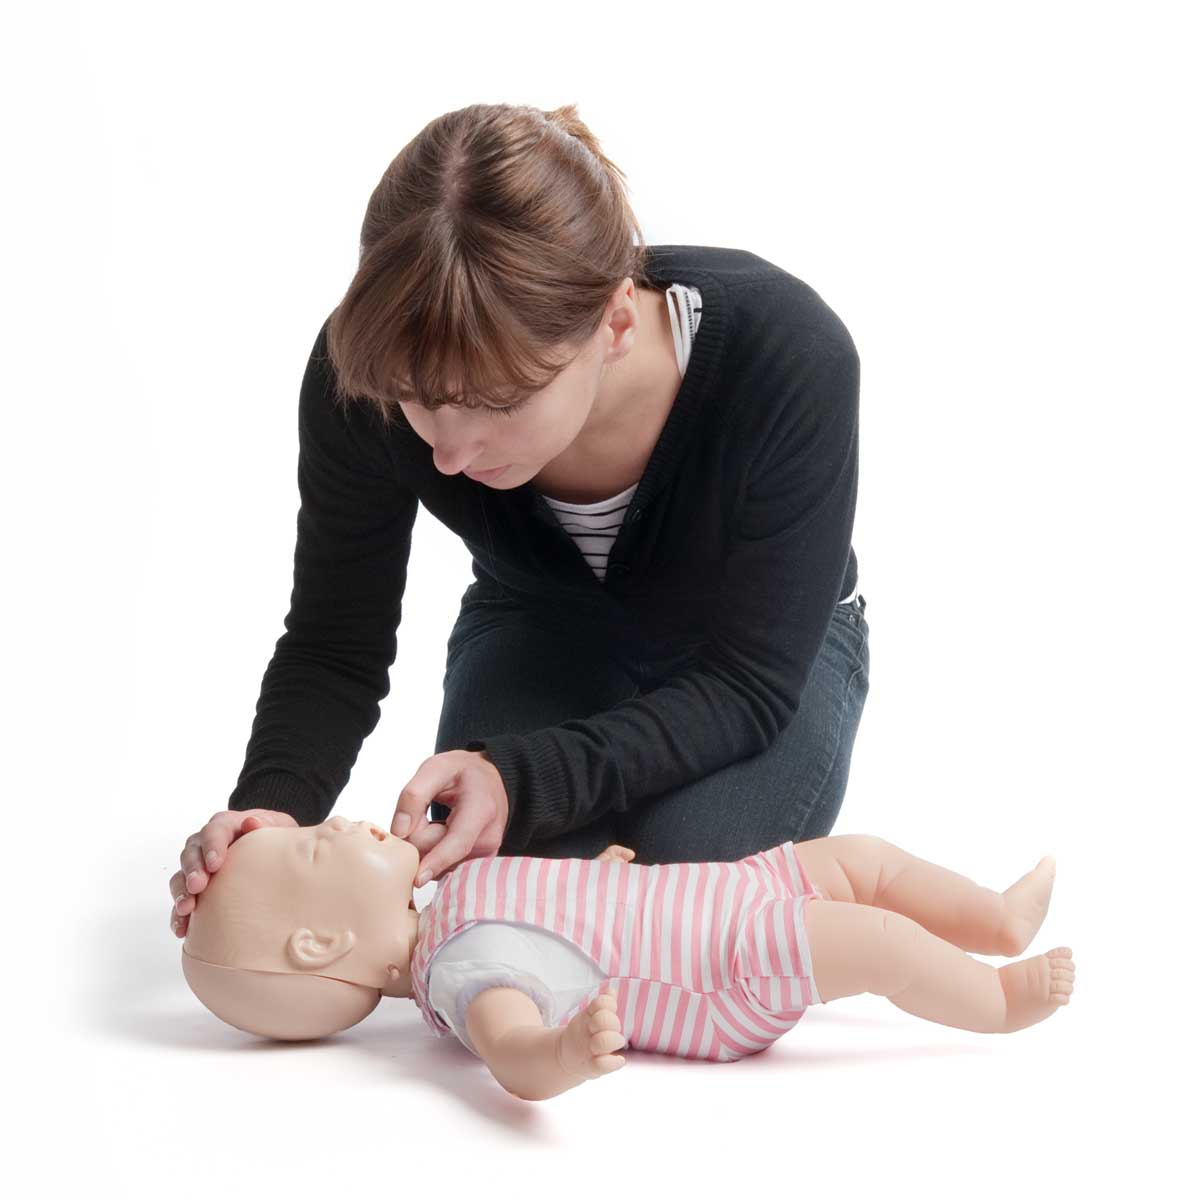 Pack of 4 Light Skin Laerdal Baby Anne™ CPR Training Manikins in use